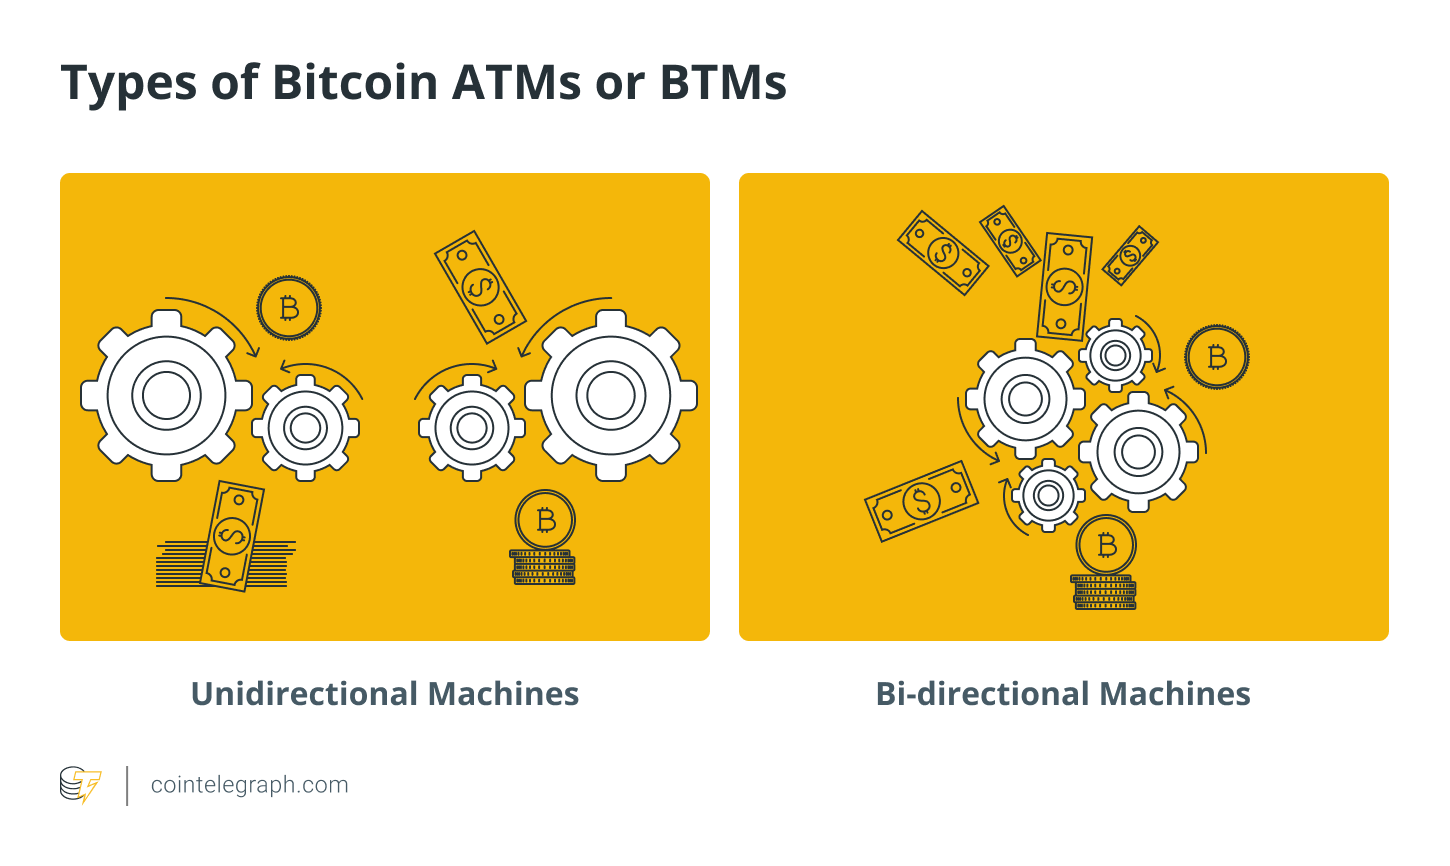 Types of Bitcoin ATMs or BTMs